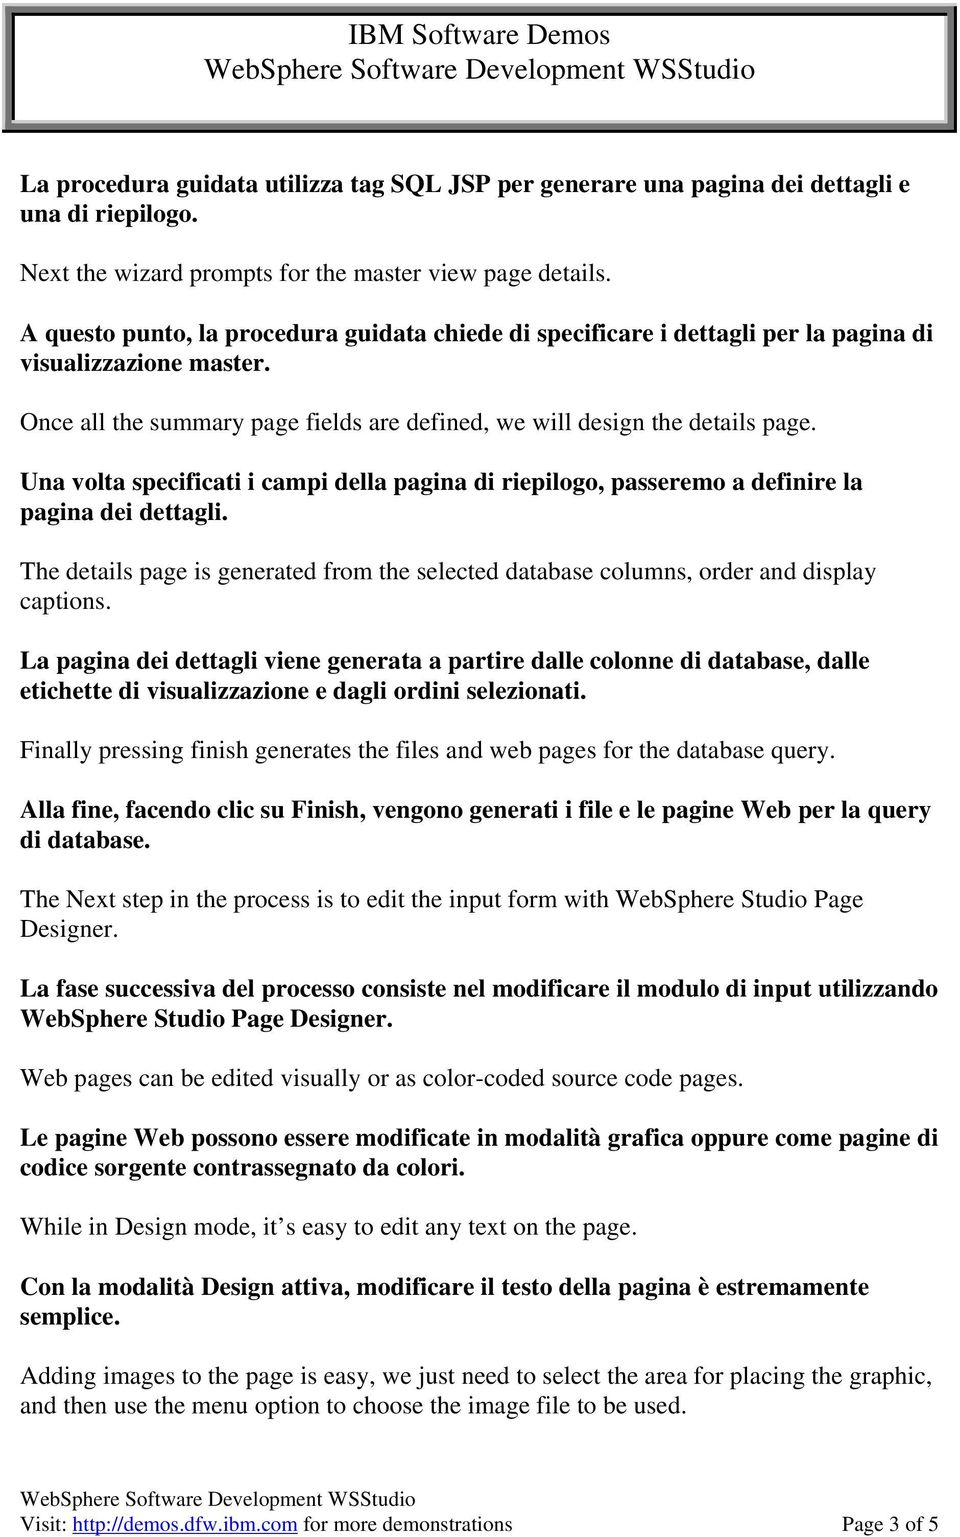 Una volta specificati i campi della pagina di riepilogo, passeremo a definire la pagina dei dettagli. The details page is generated from the selected database columns, order and display captions.